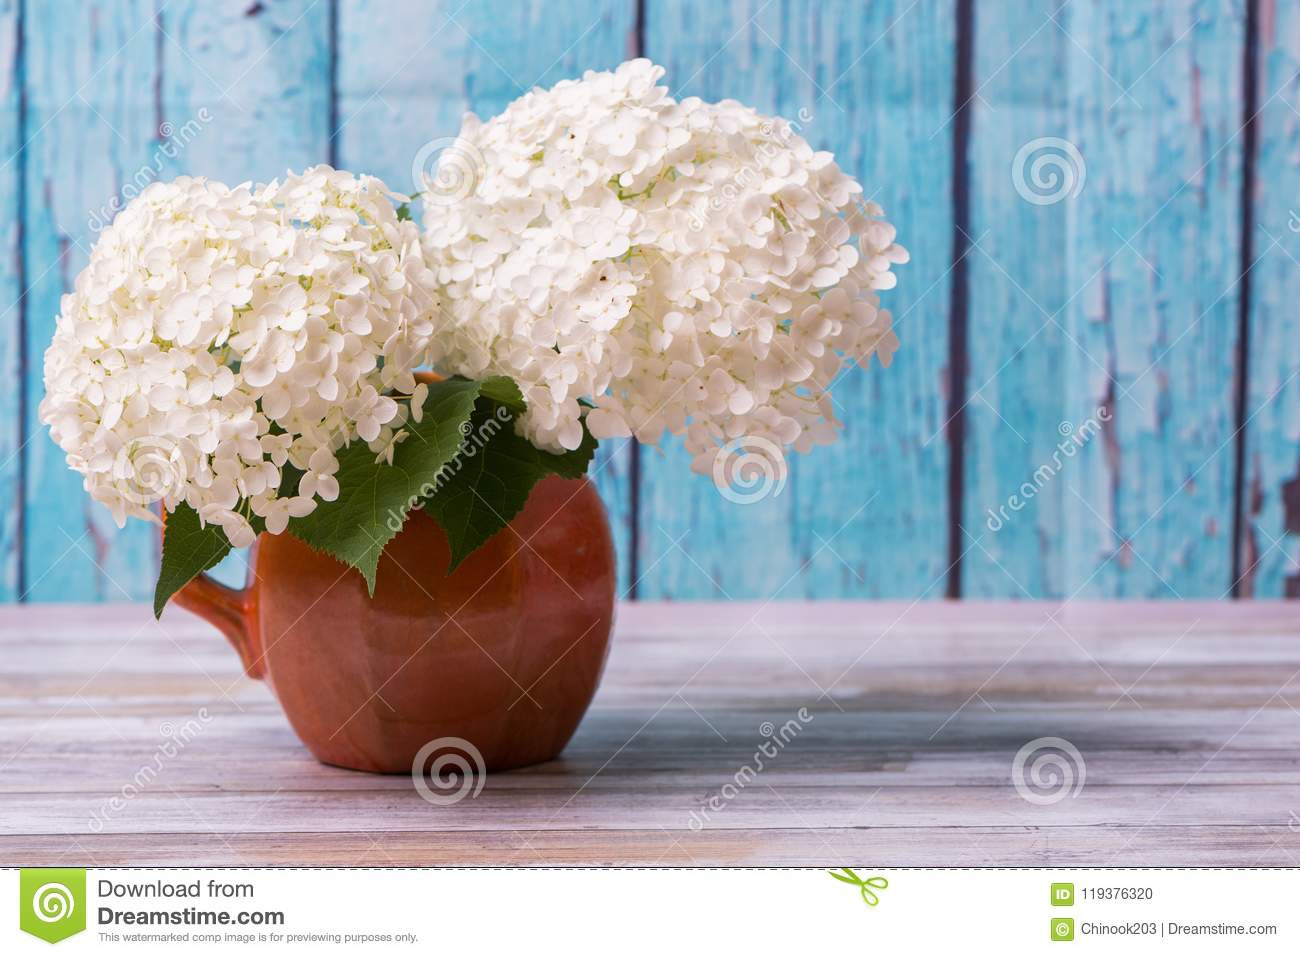 antique green pottery vase of white hydrangea flowers in a rustic vase with blue background stock pertaining to white hydrangea flowers in a rustic vase with blue background